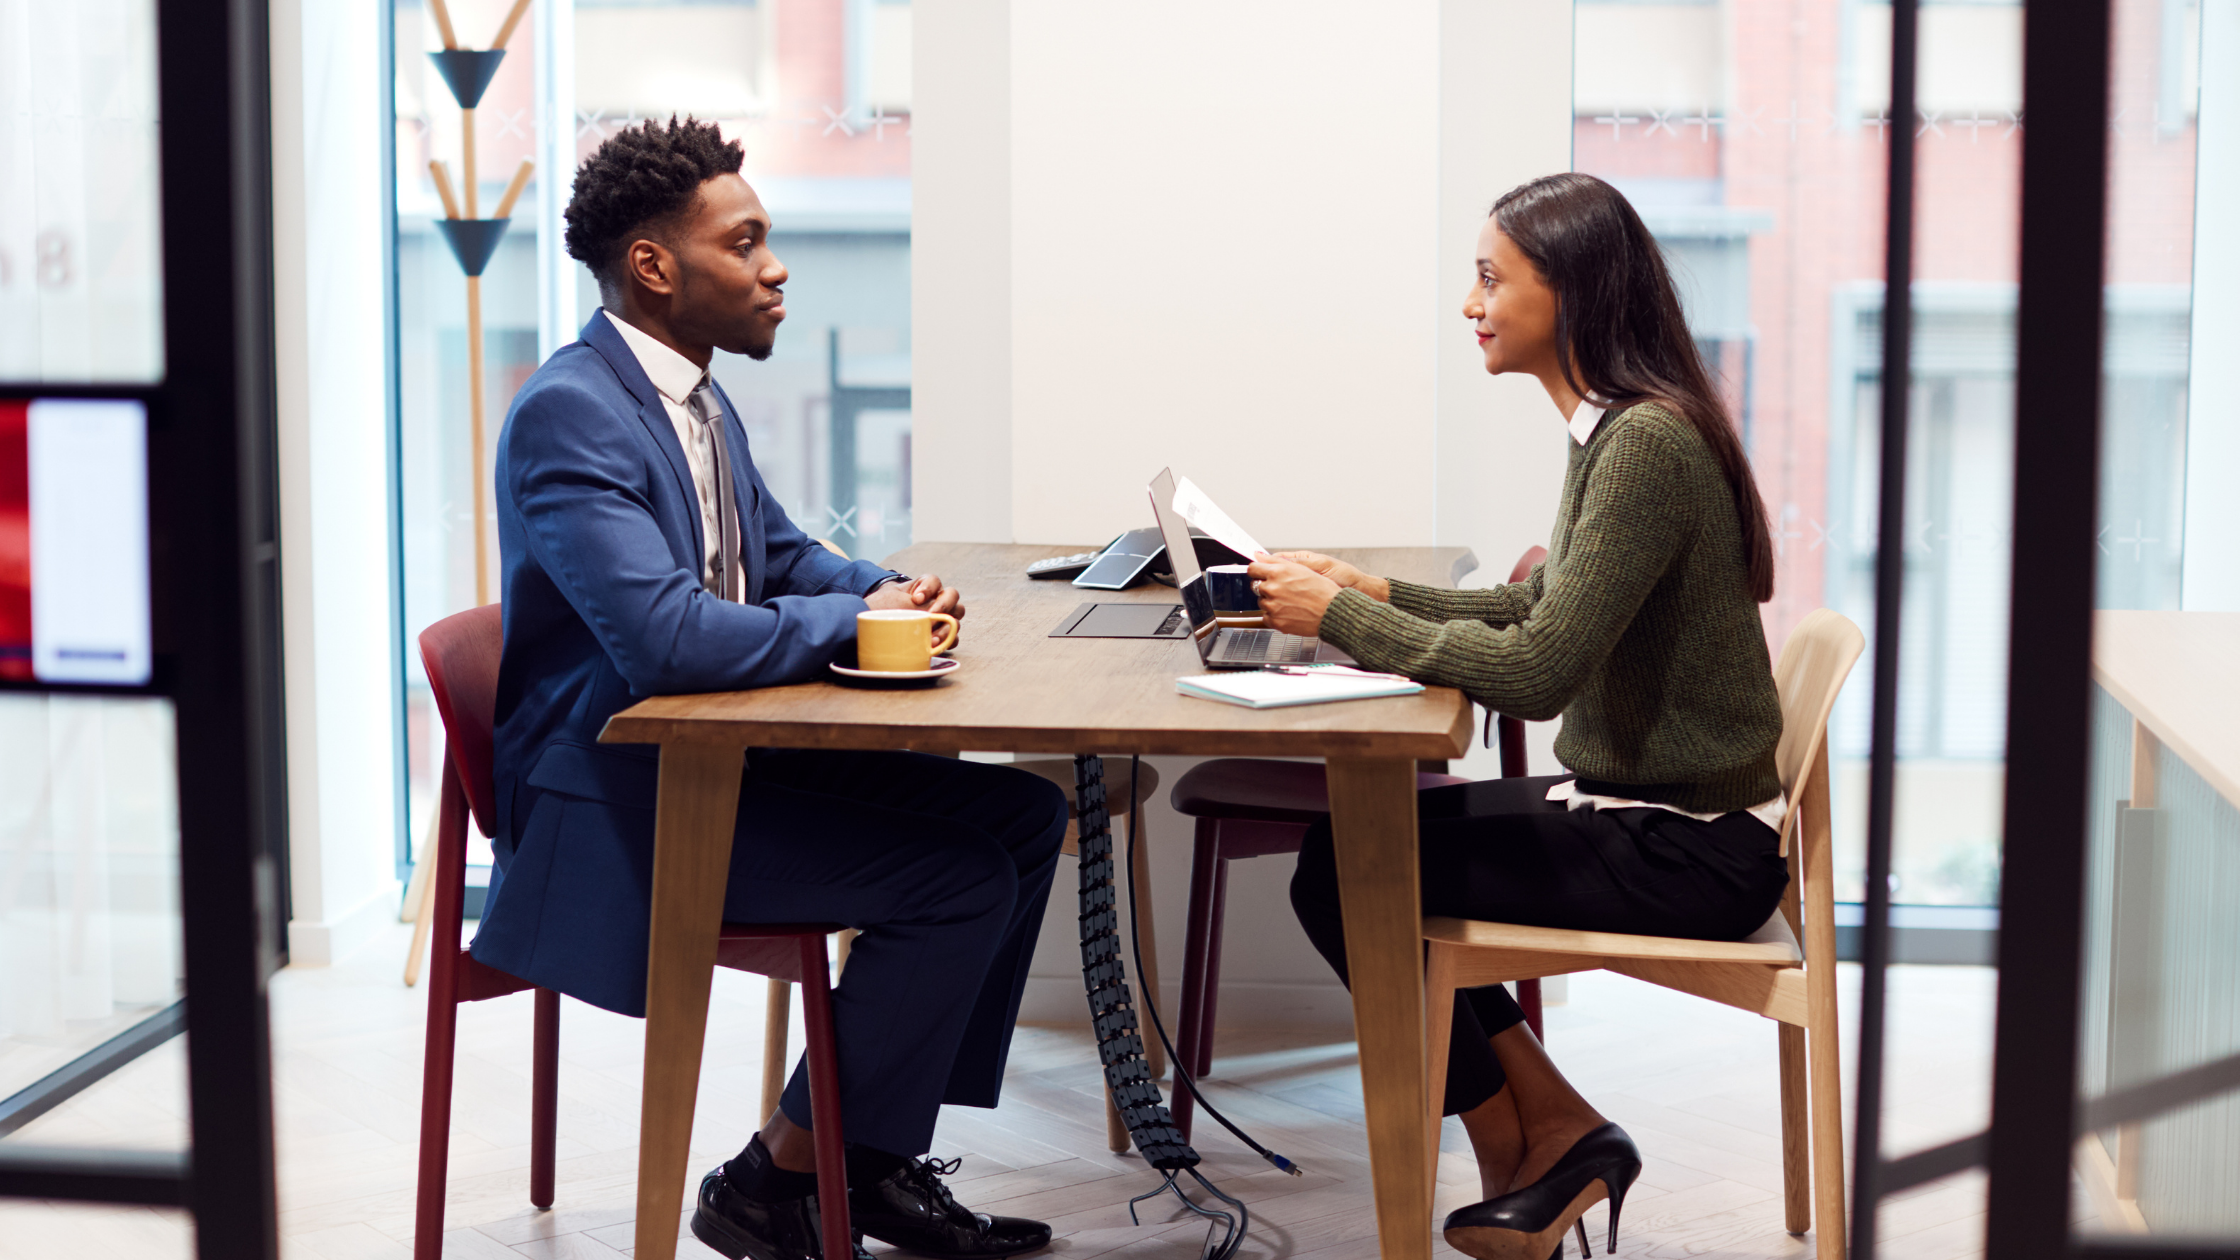 How to interview candidates for your small business